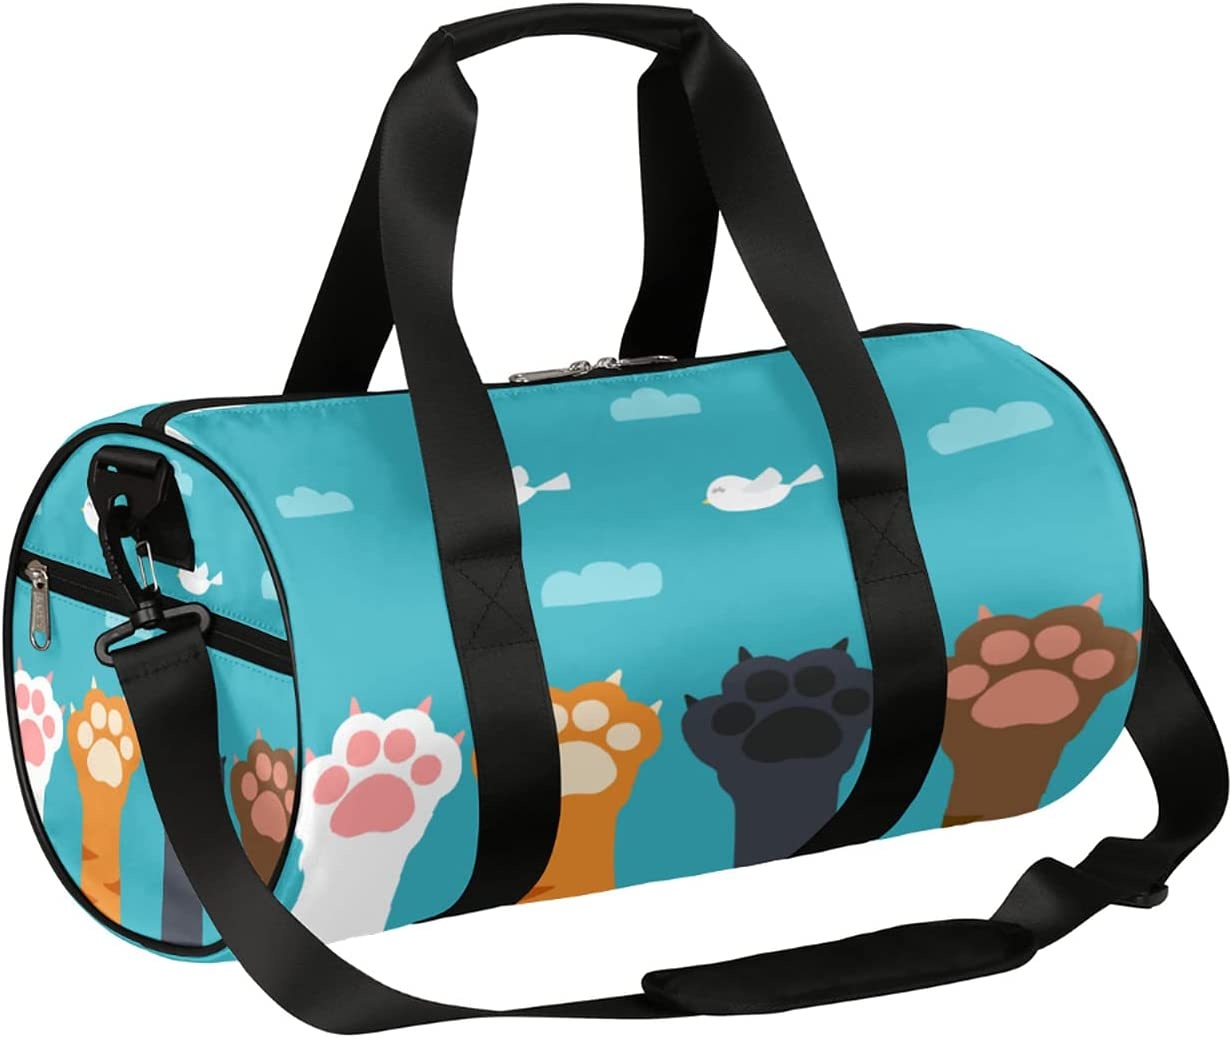 Sport Gym Our shop OFFers the best service Bag Cute Animal Small Autumn Fox Duffel lightweigh Free Shipping Cheap Bargain Gift